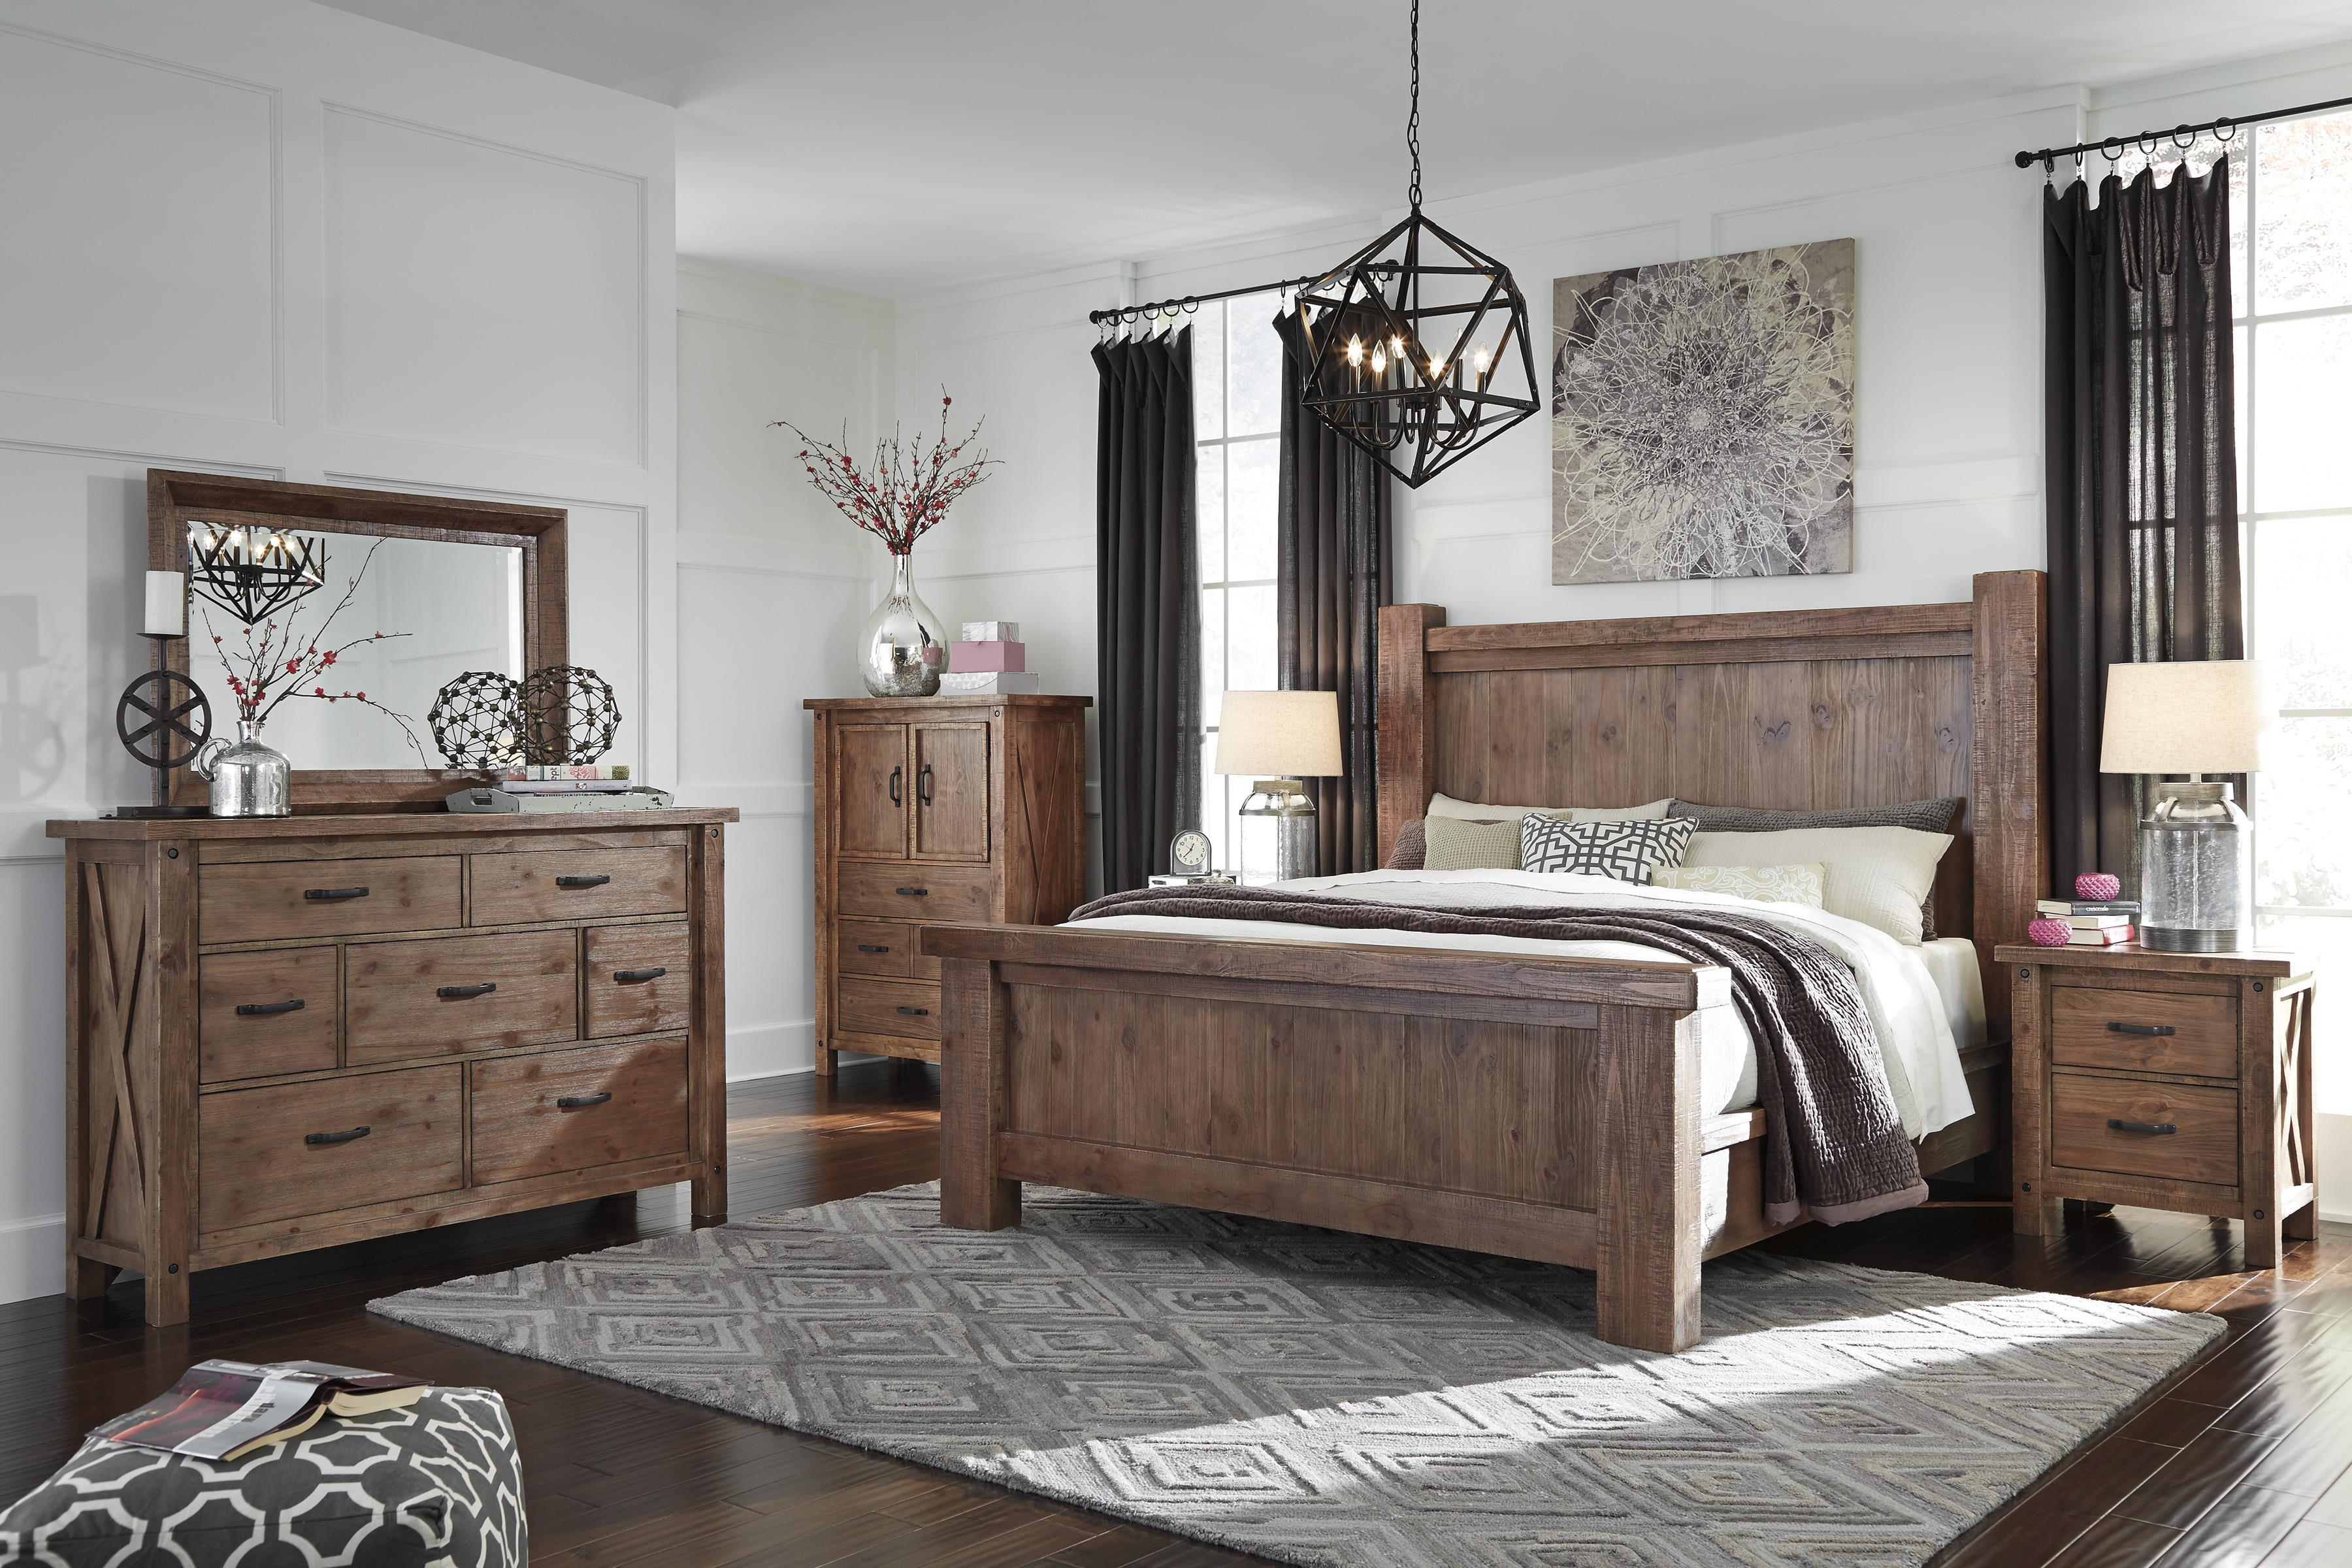 Signature Design by Ashley Tamilo King Bedroom Group - Item Number: B714 K Bedroom Group 2